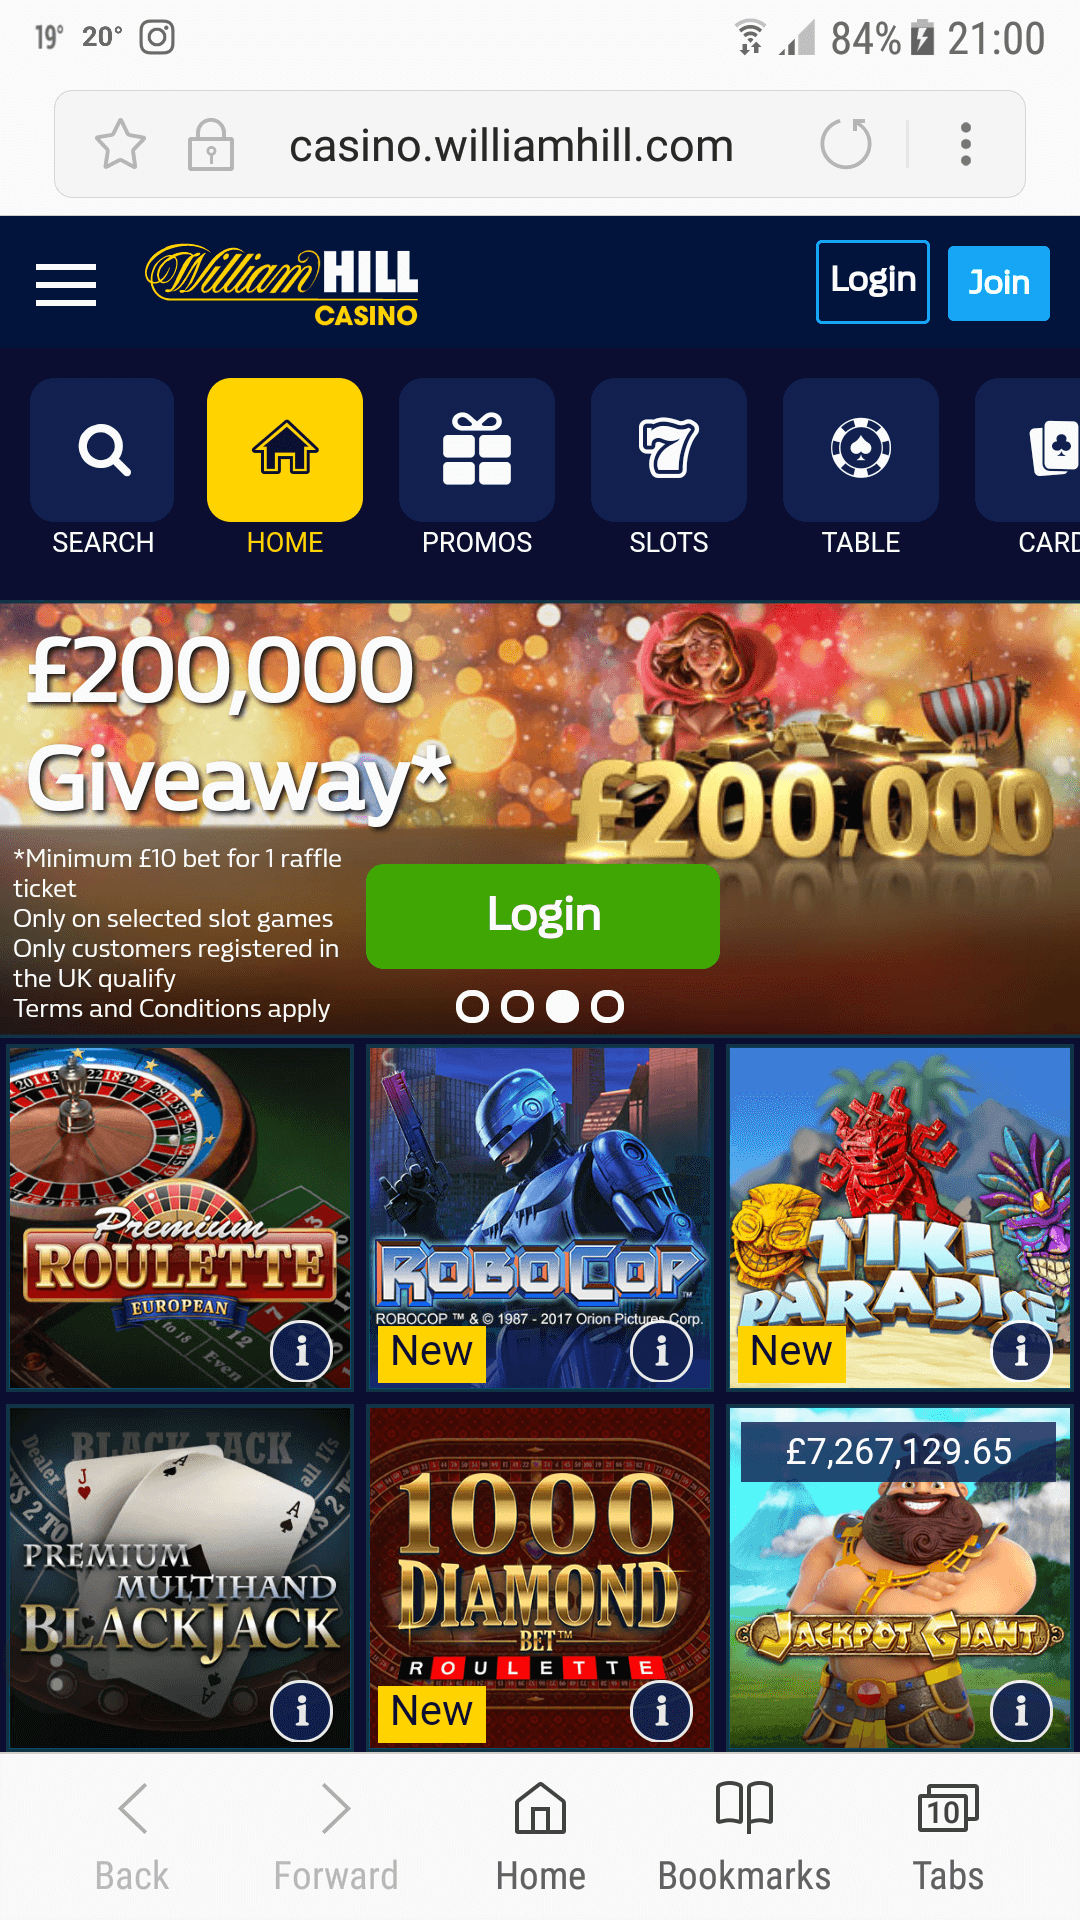 William hill mobile slot games gambling in barcelona spain